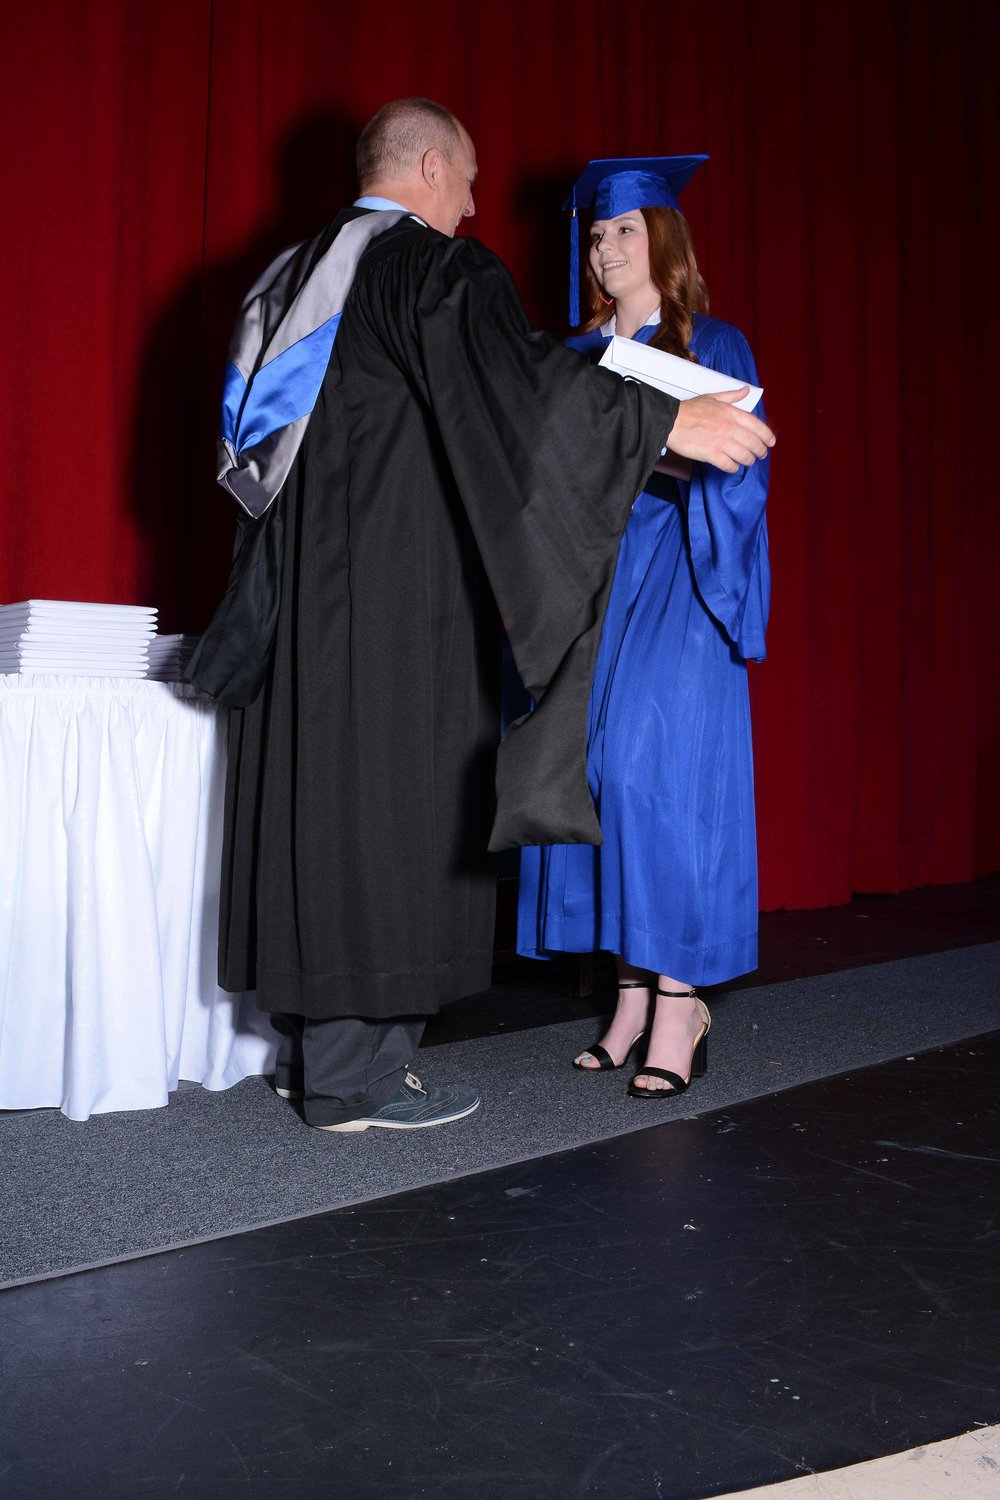 May14 Commencement111.jpg